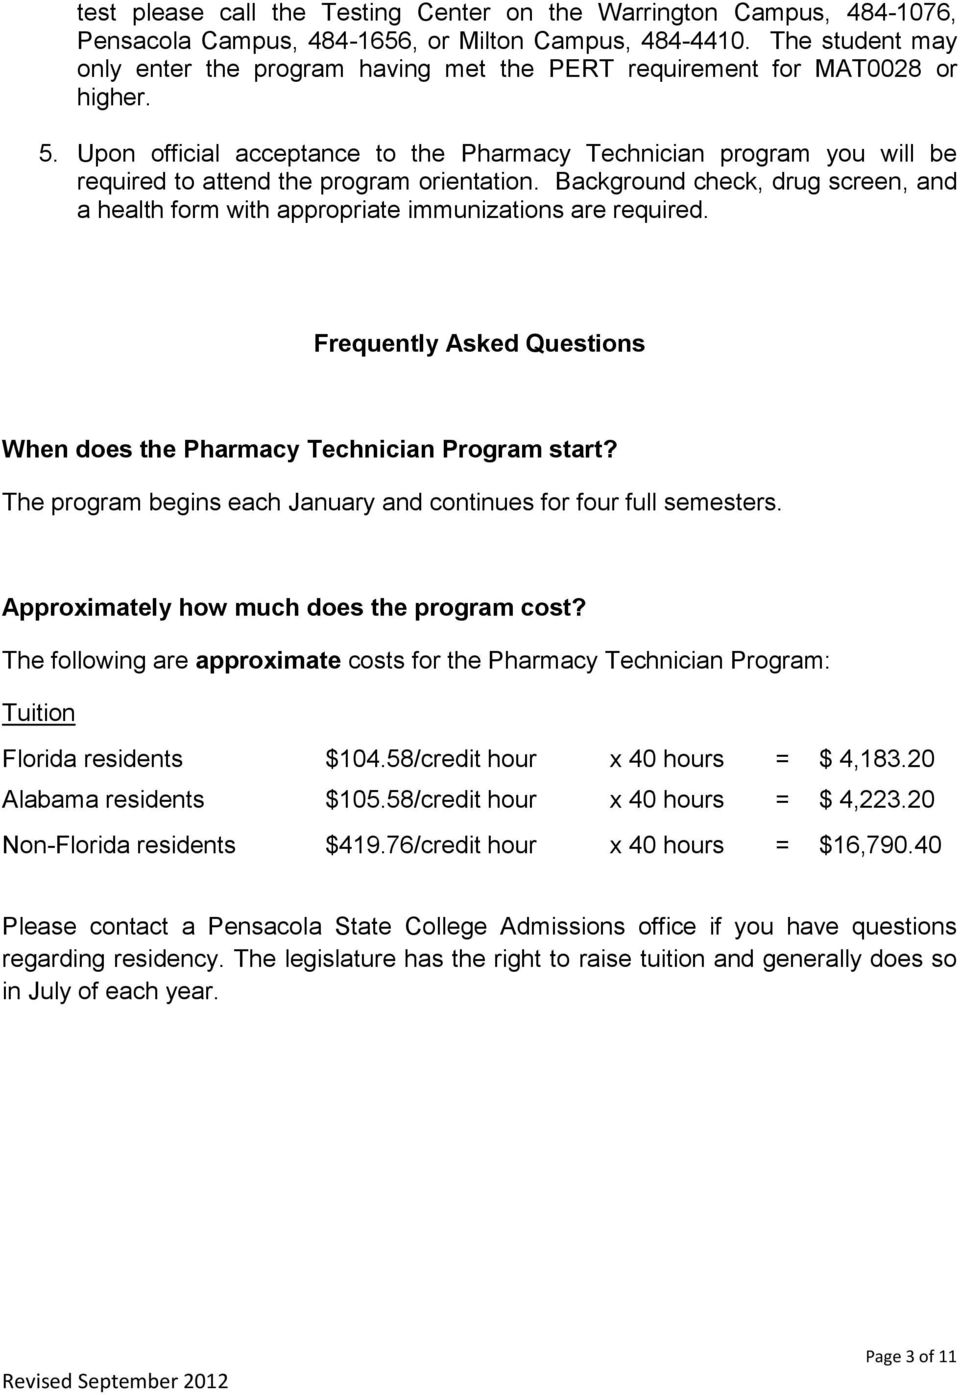 Upon official acceptance to the Pharmacy Technician program you will be required to attend the program orientation.